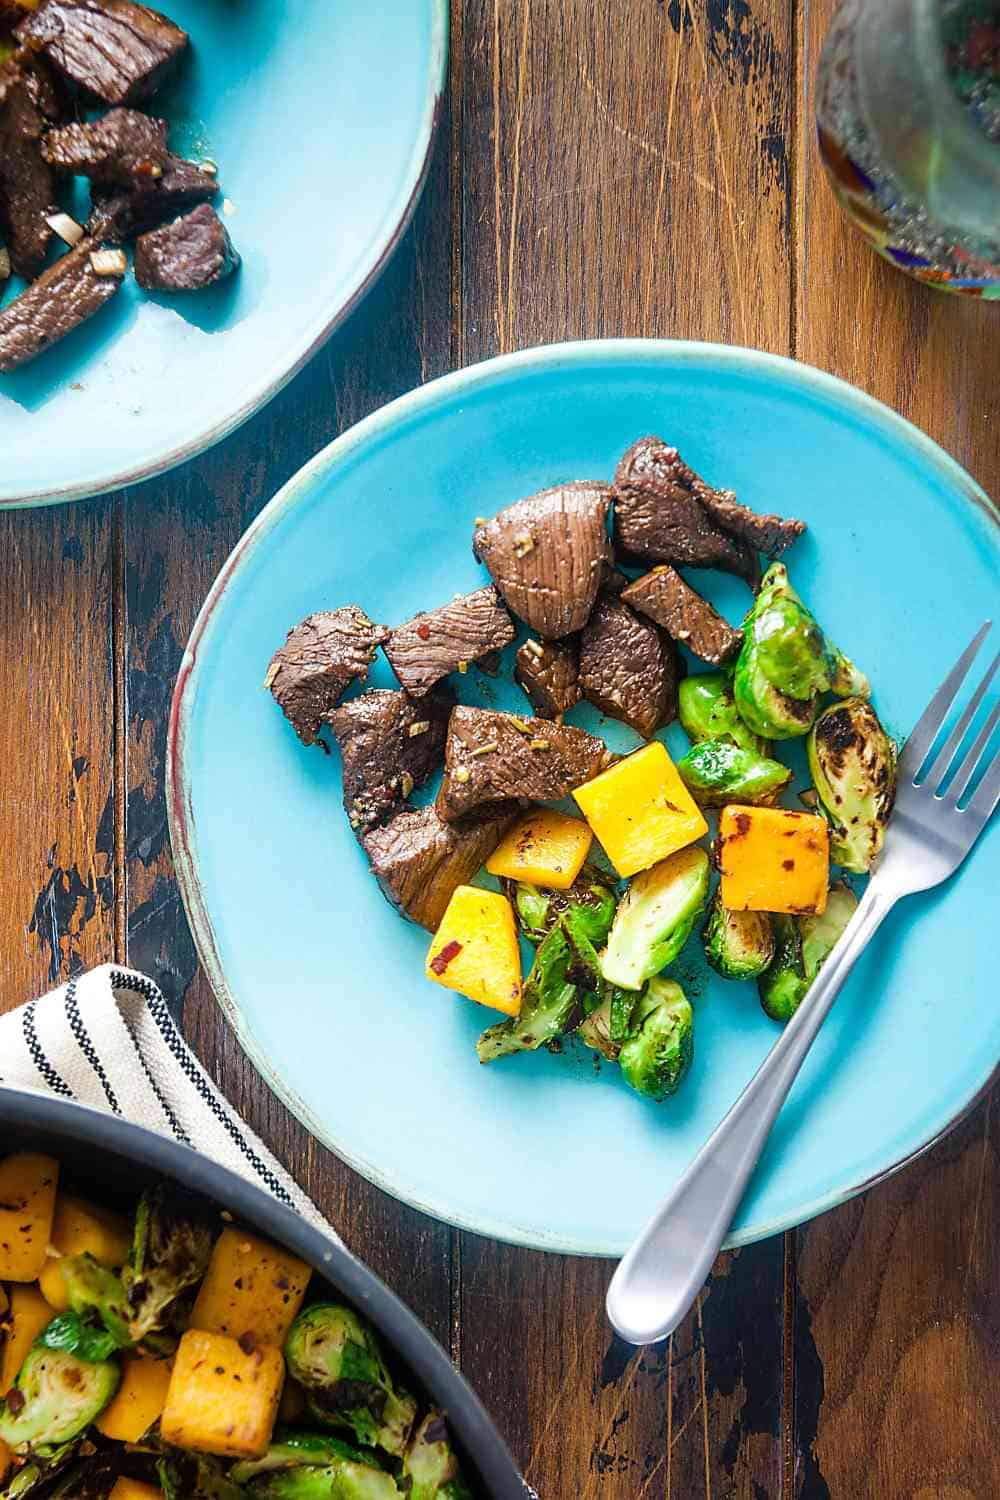 rosemary-balsamic marinaded steak tips with butternut squash and Brussles sprouts on a plate